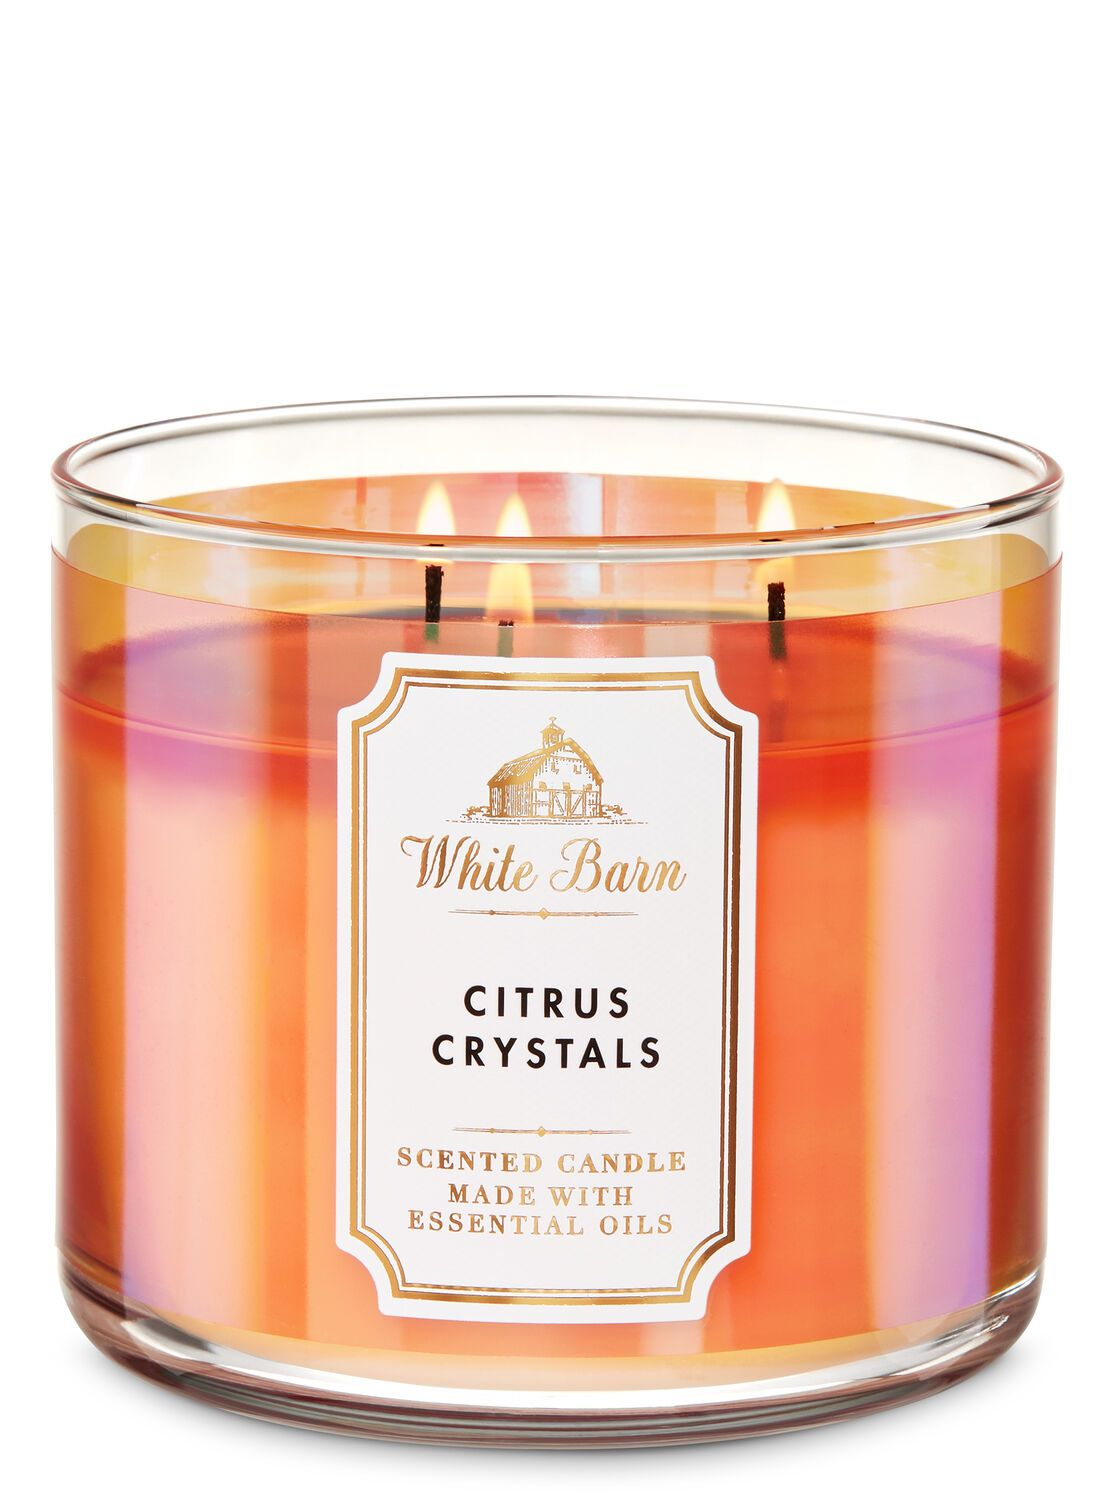 Bath body works citrus crystals 3wick candle in 2020